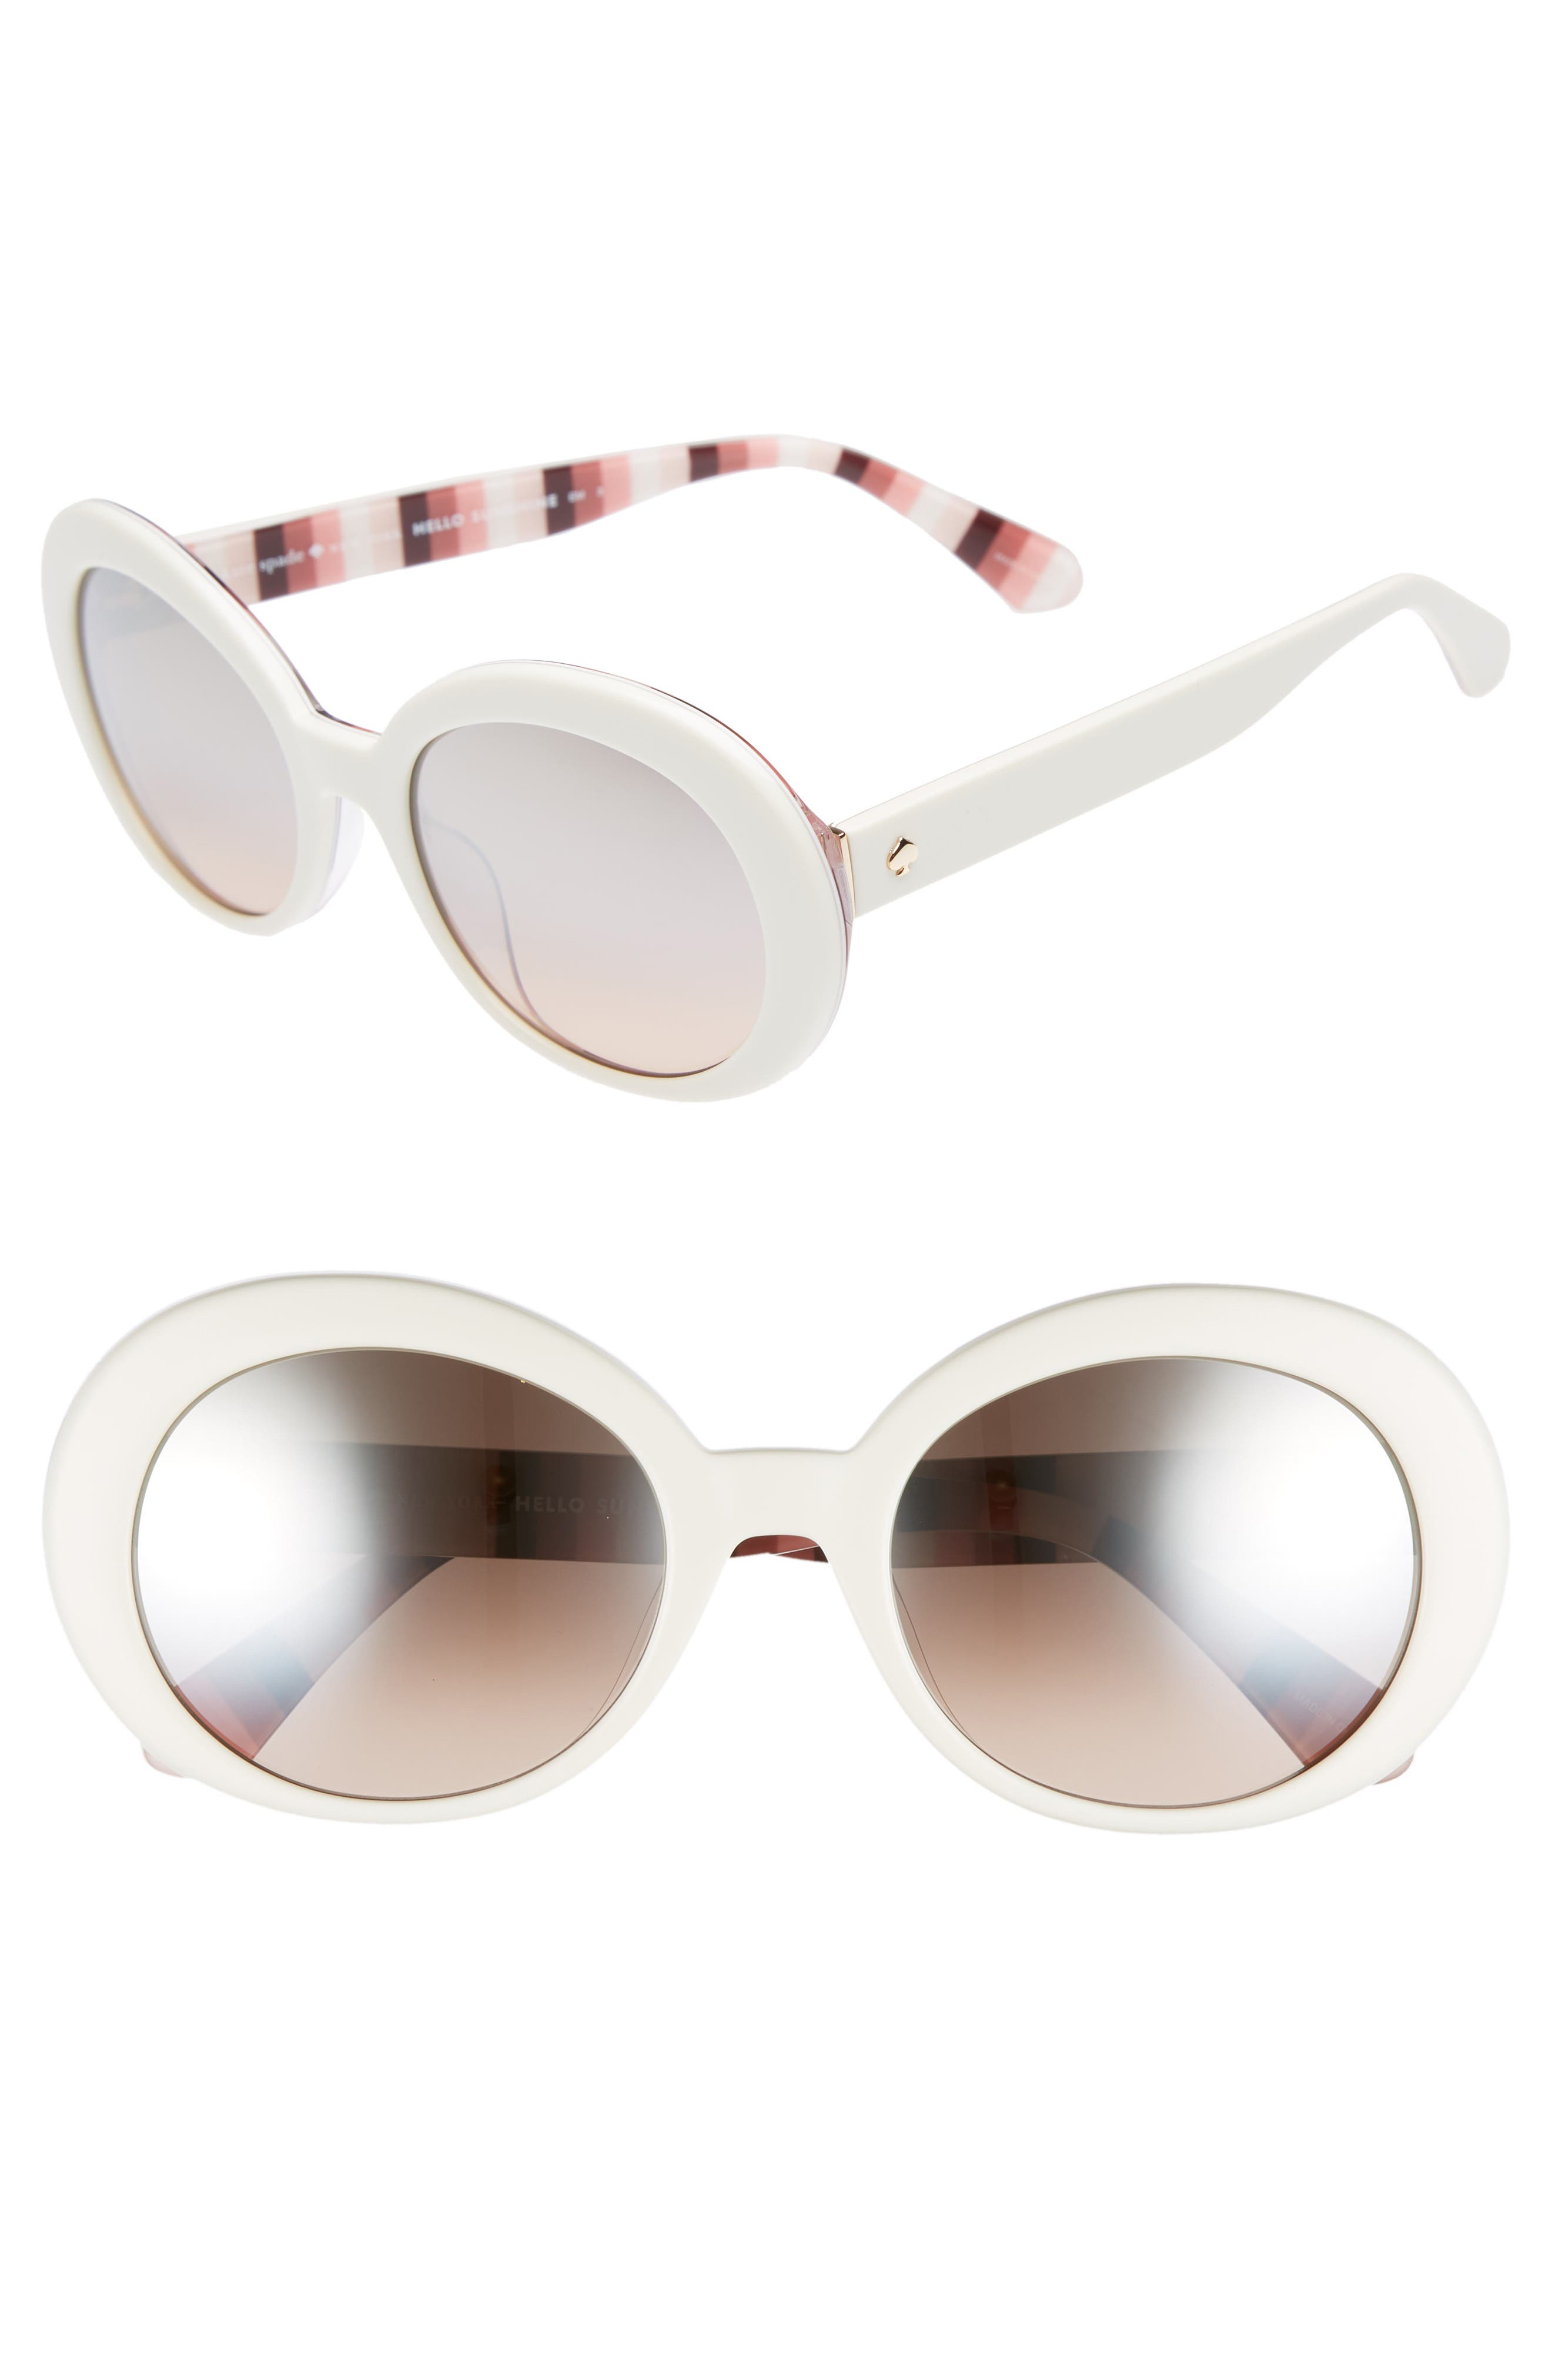 cindra 54mm gradient round sunglasses,                             Main thumbnail 1, color,                             Ivory